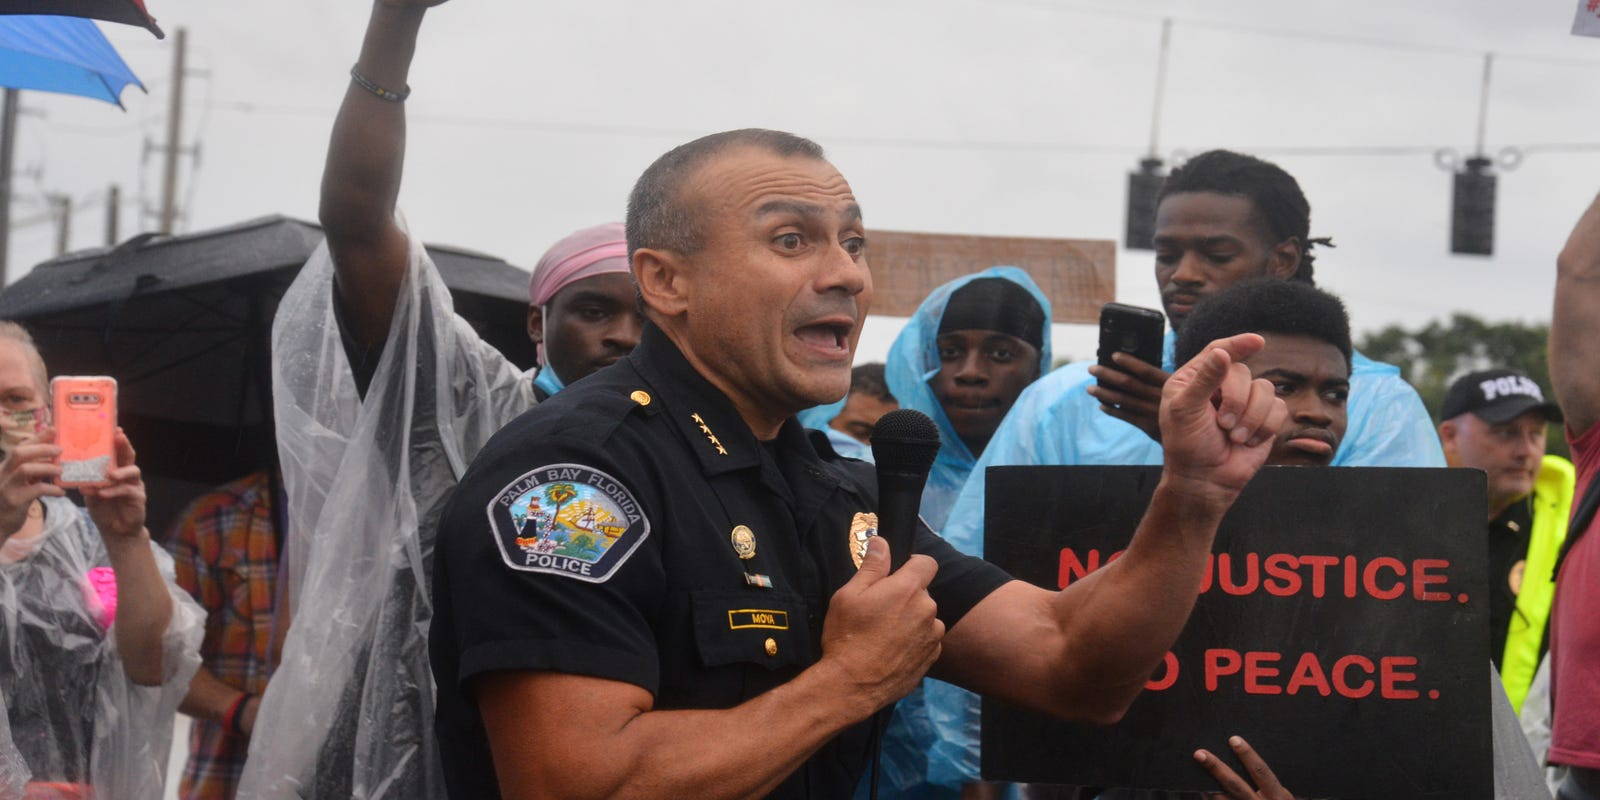 'Putting your knee on someone's neck is not allowed here': Palm Bay police  chief